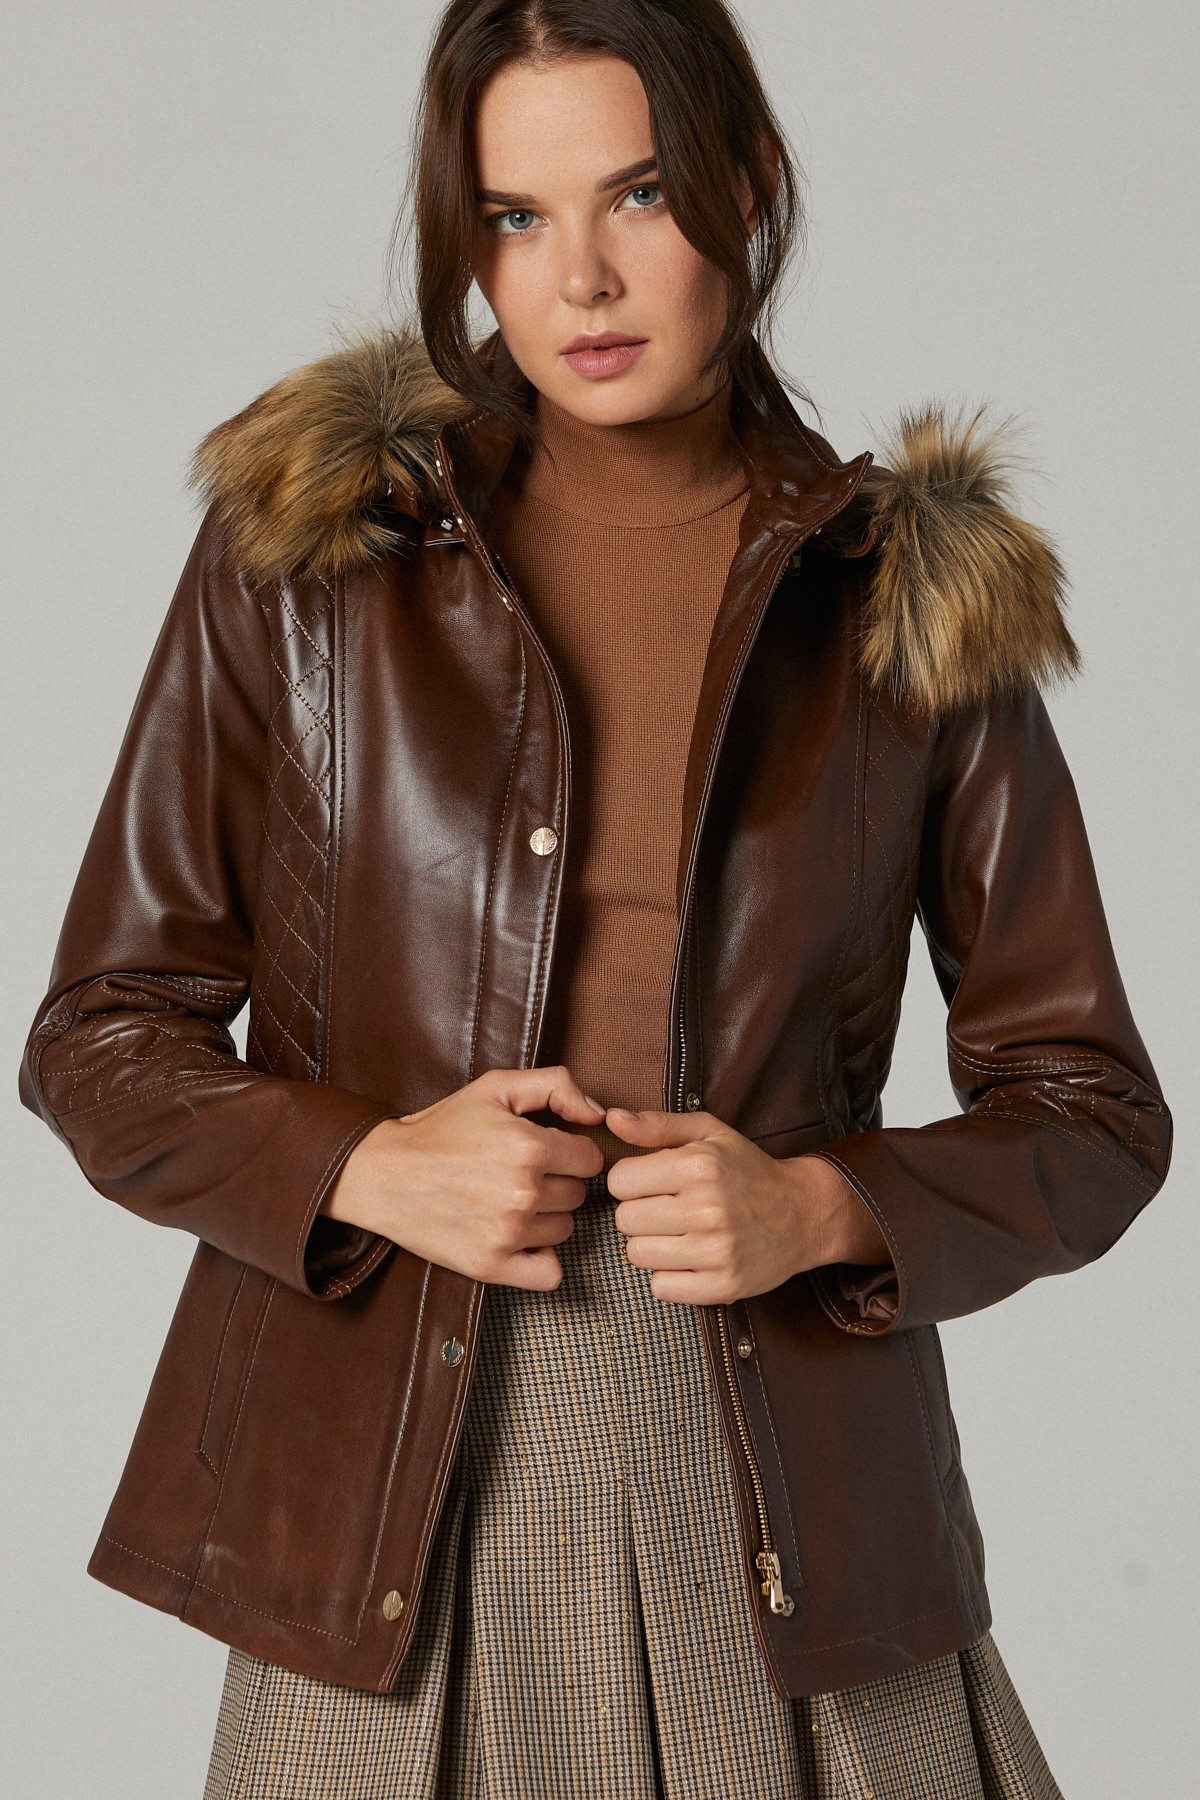 Fur Collared Leather Jacket